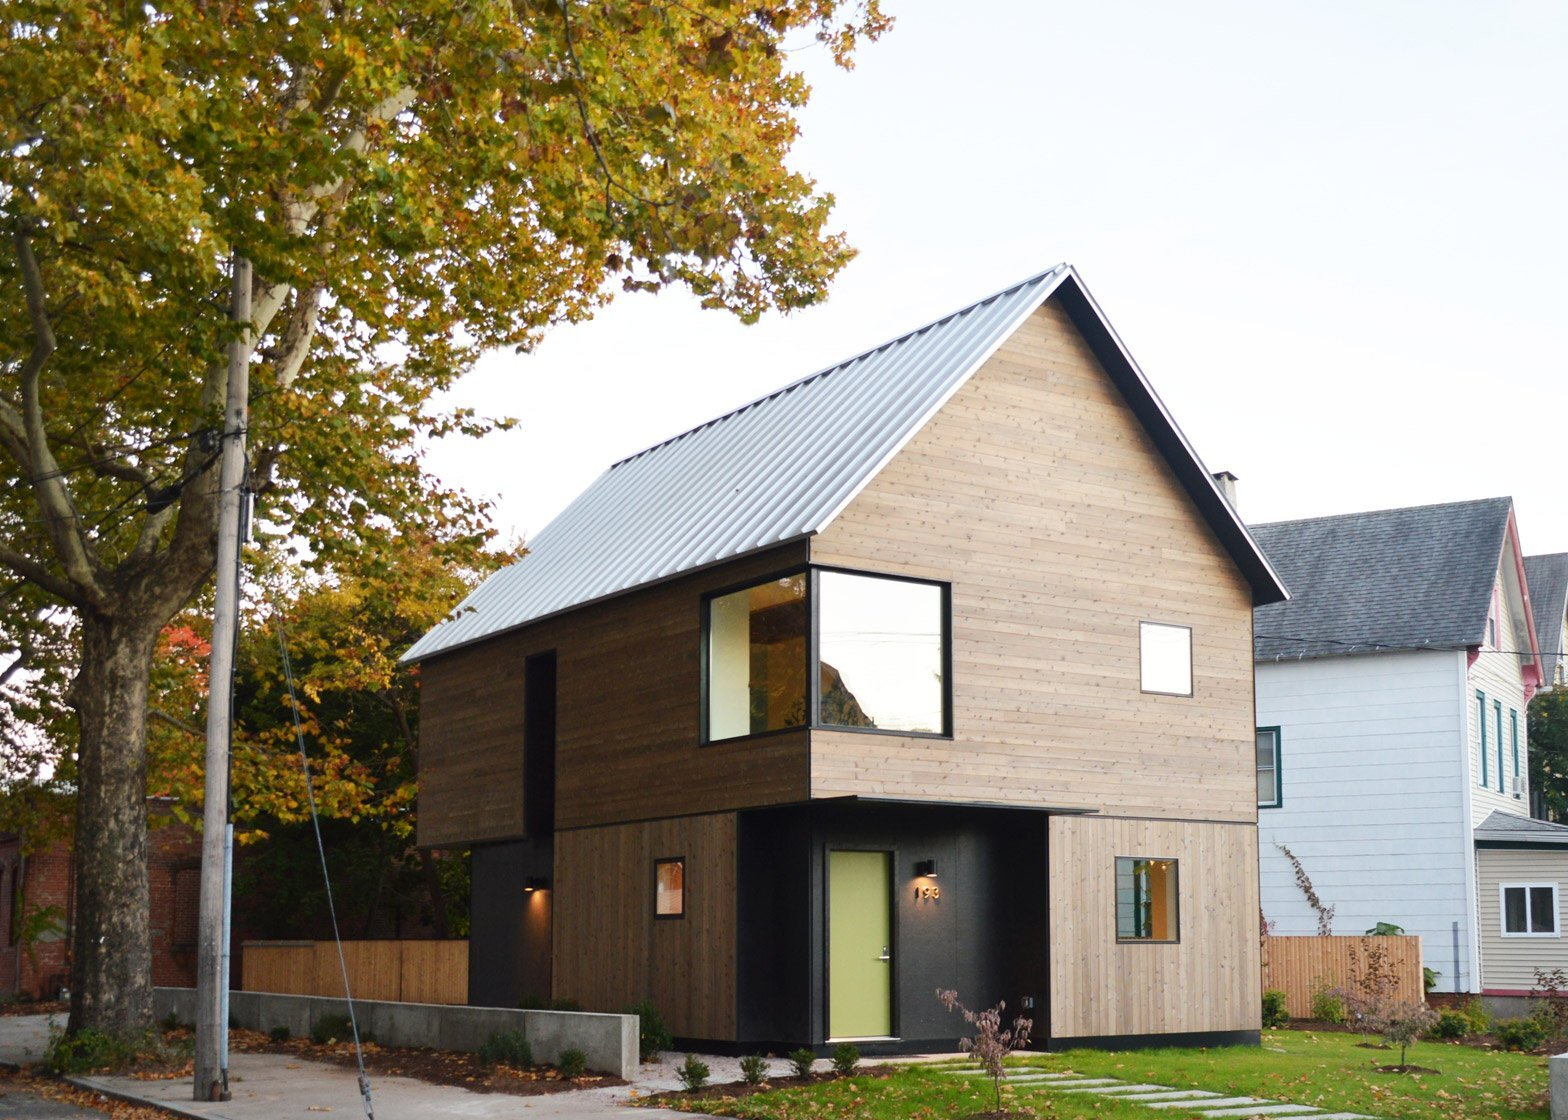 An Affordable Family Home Designed & Built By Yale Students